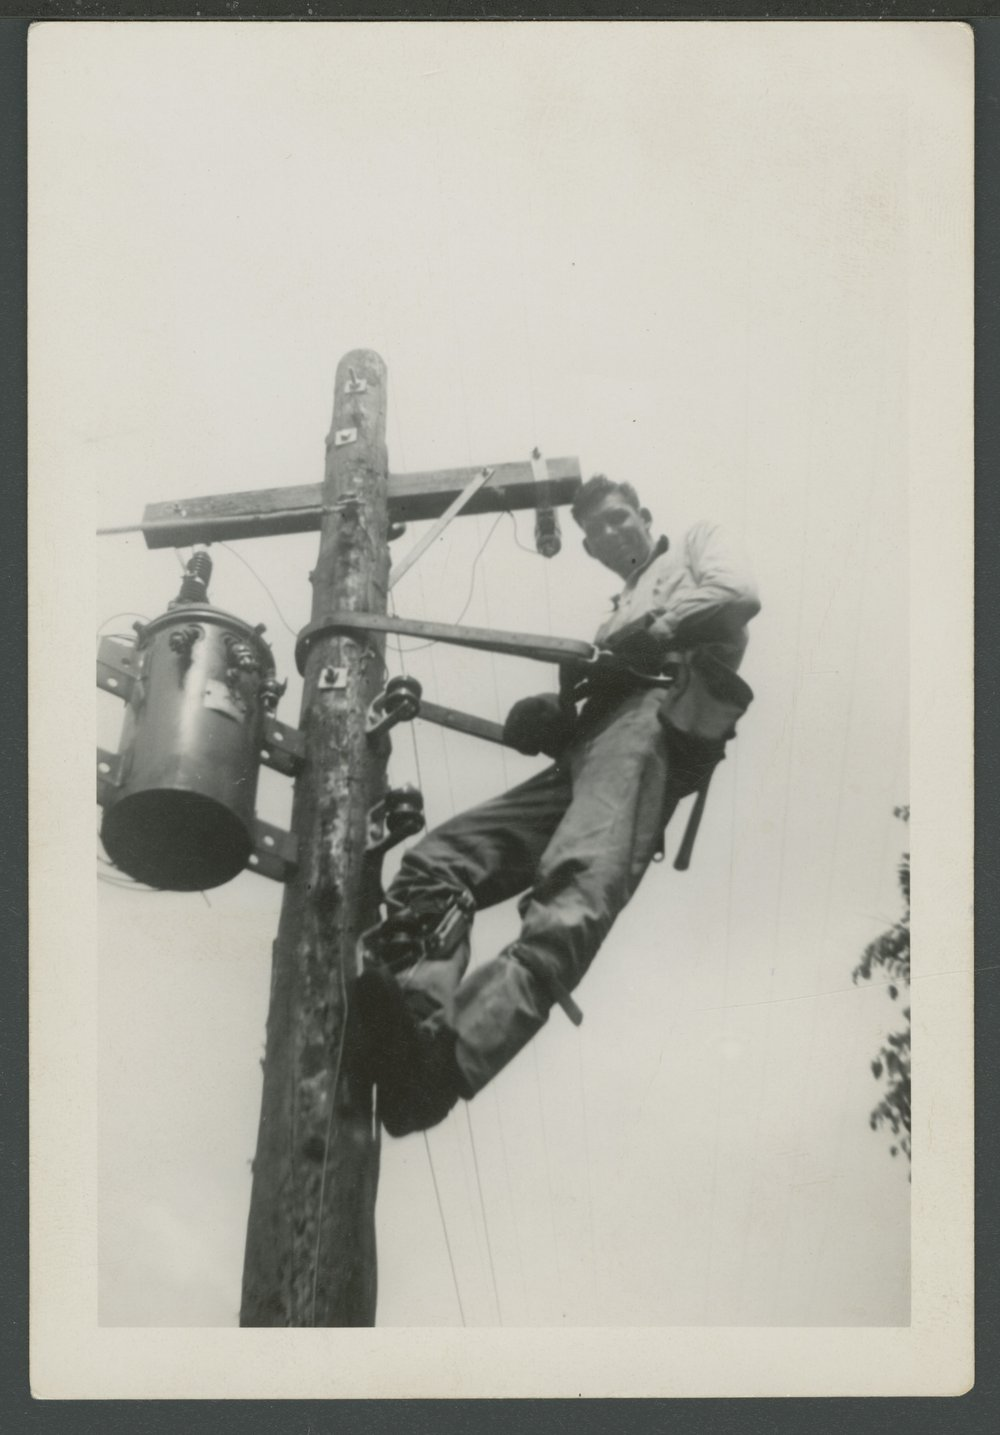 DS&O Rural Electric Cooperative's lineman - 1